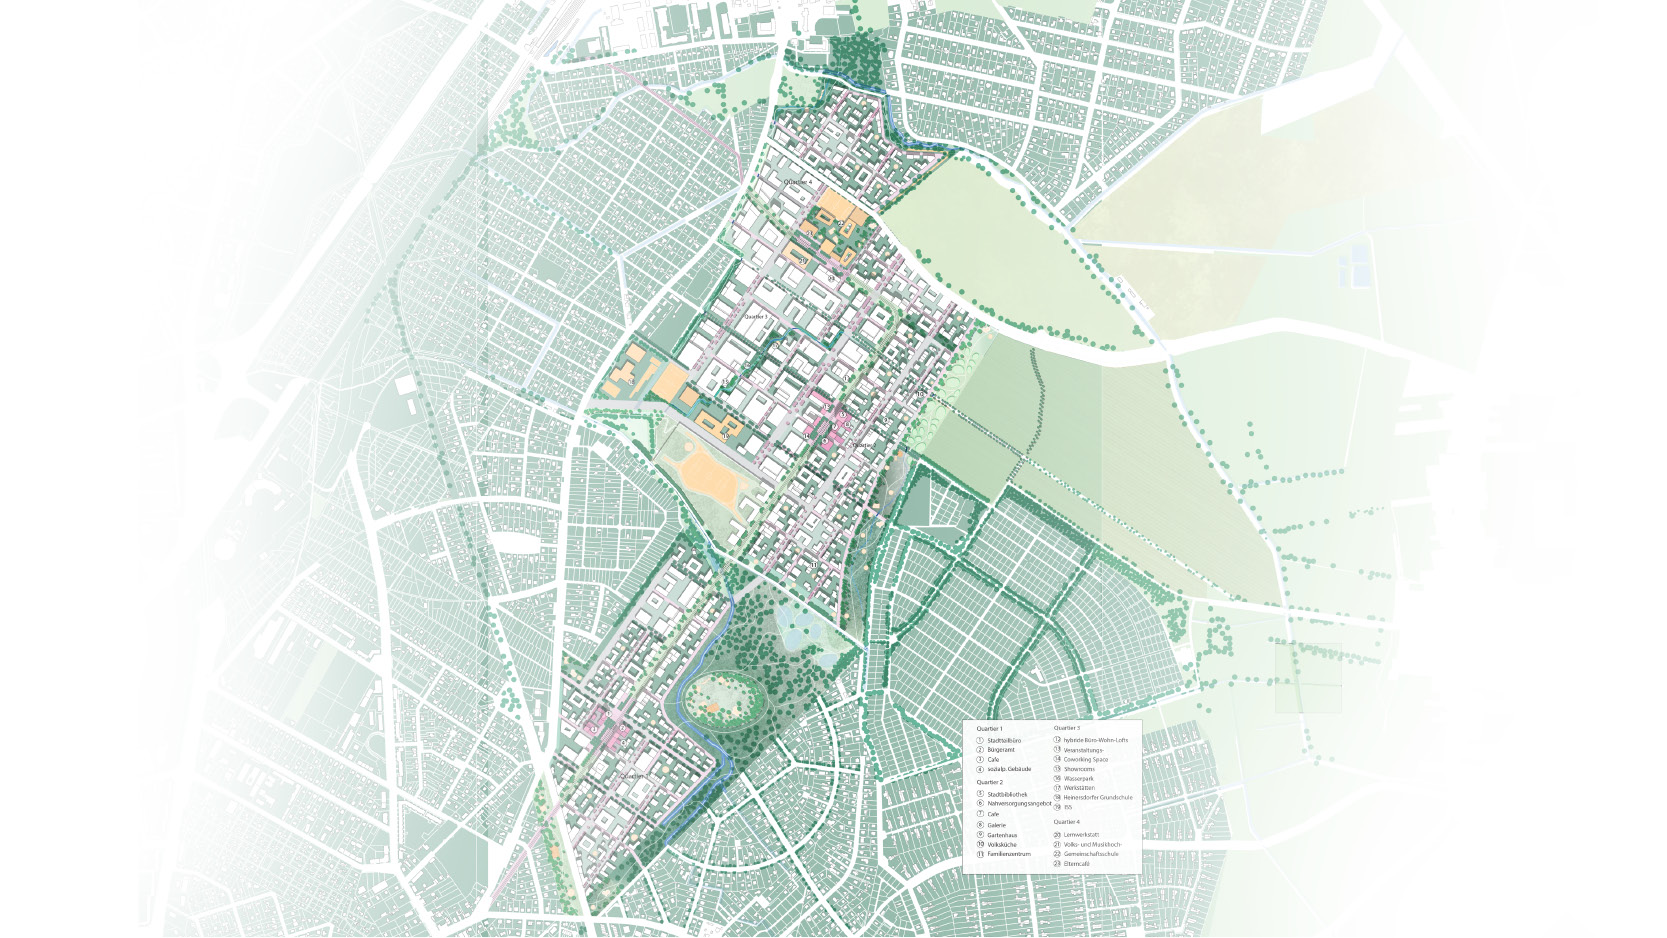 Blankenburger Süden: Making city for the 21st and 22nd century